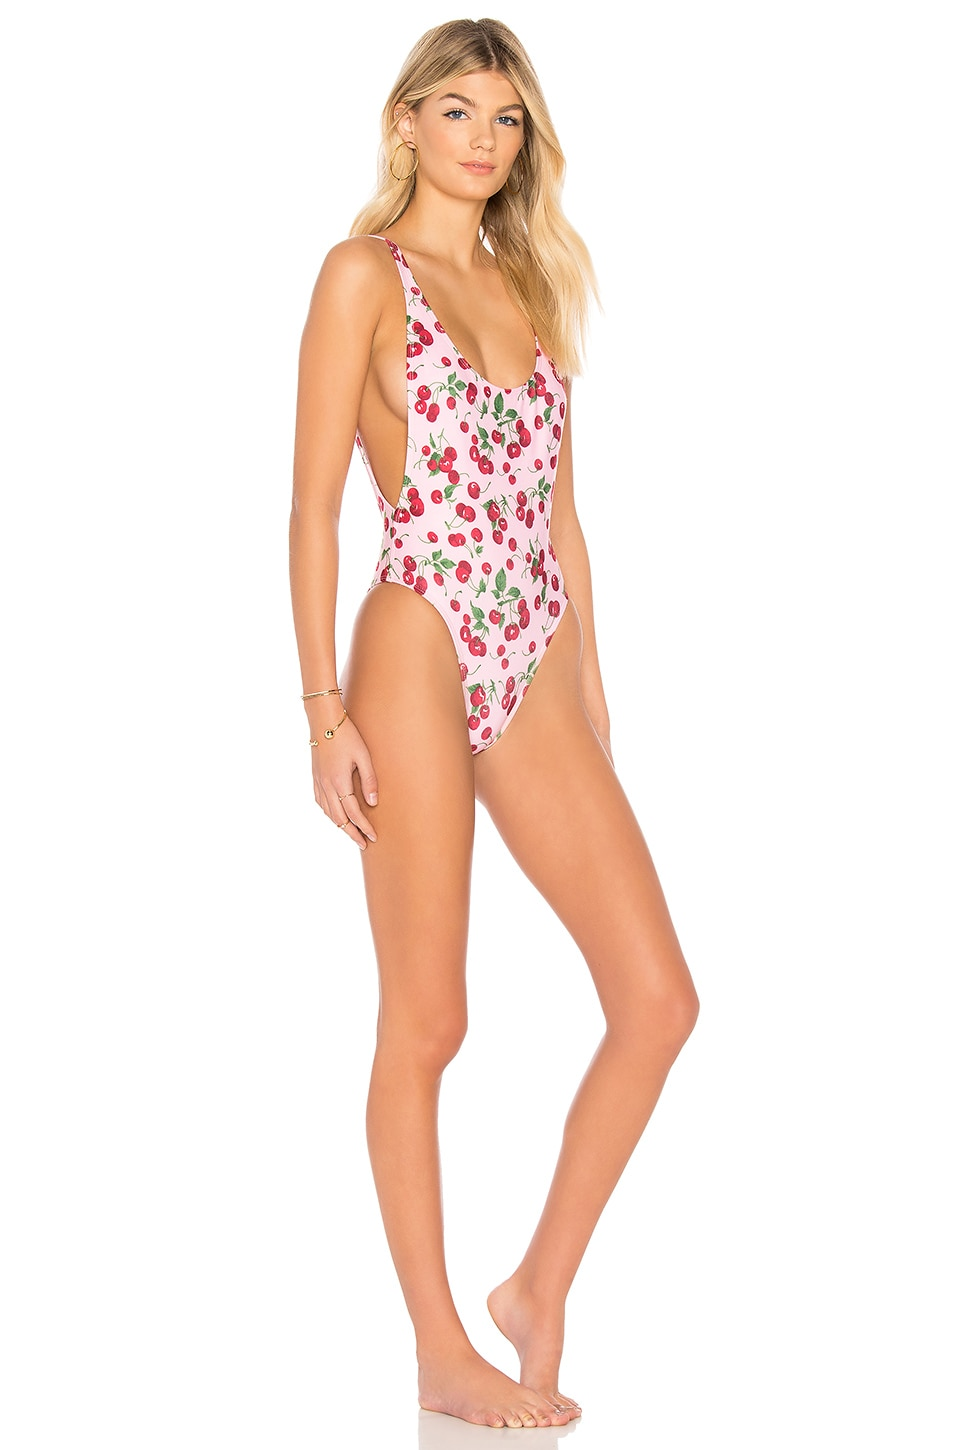 CHLOE ROSE ONE LOVE ONE PIECE